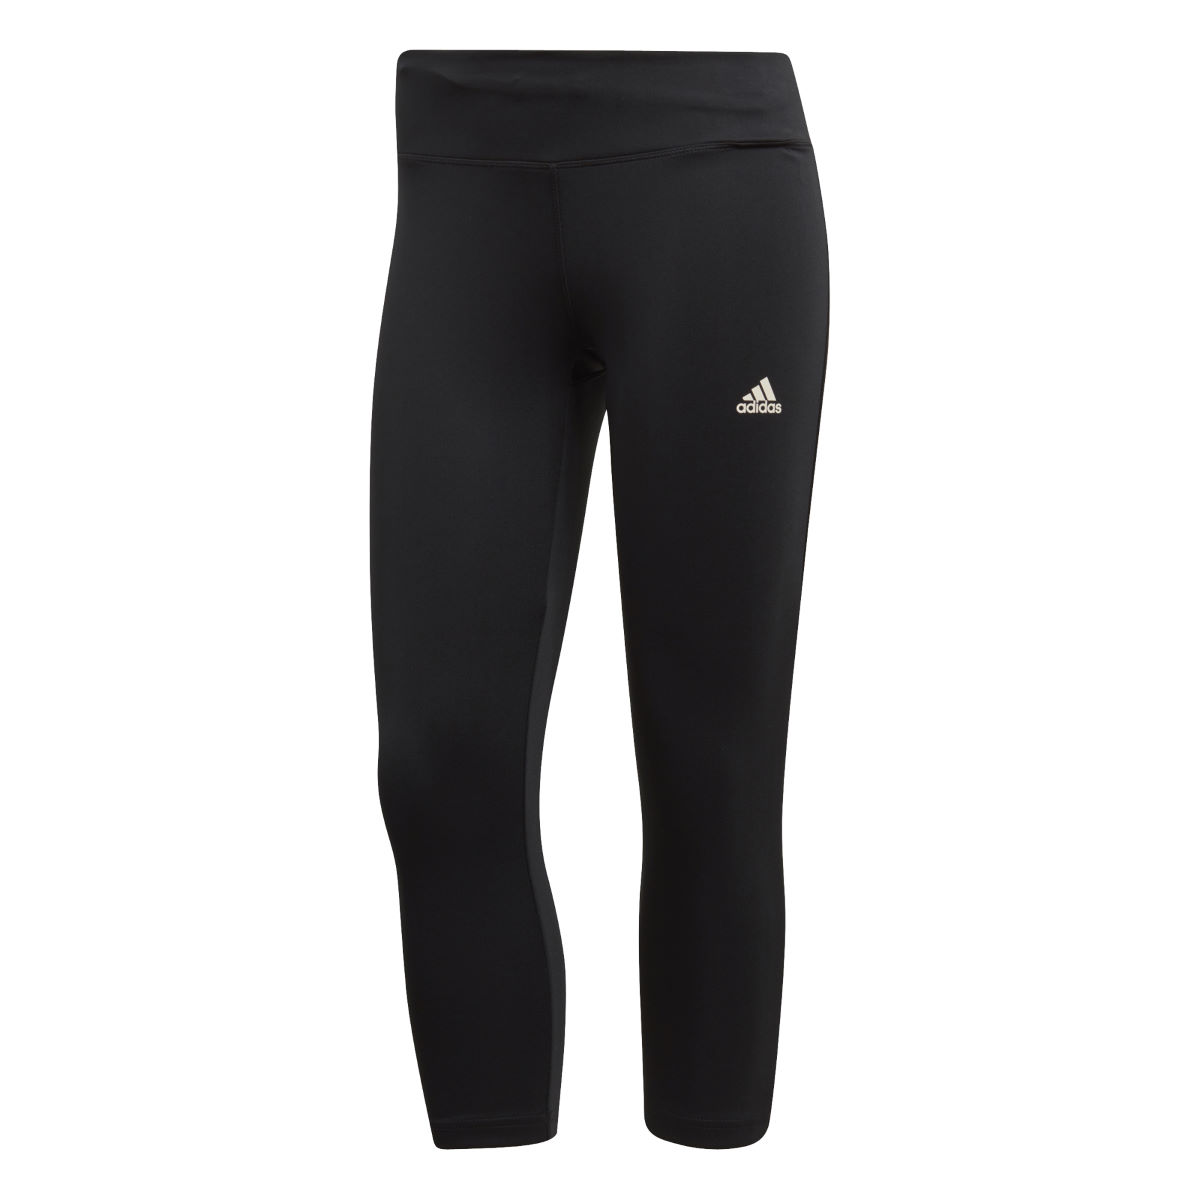 adidas Women's D2M RR Solid 3/4 Tight   Tights